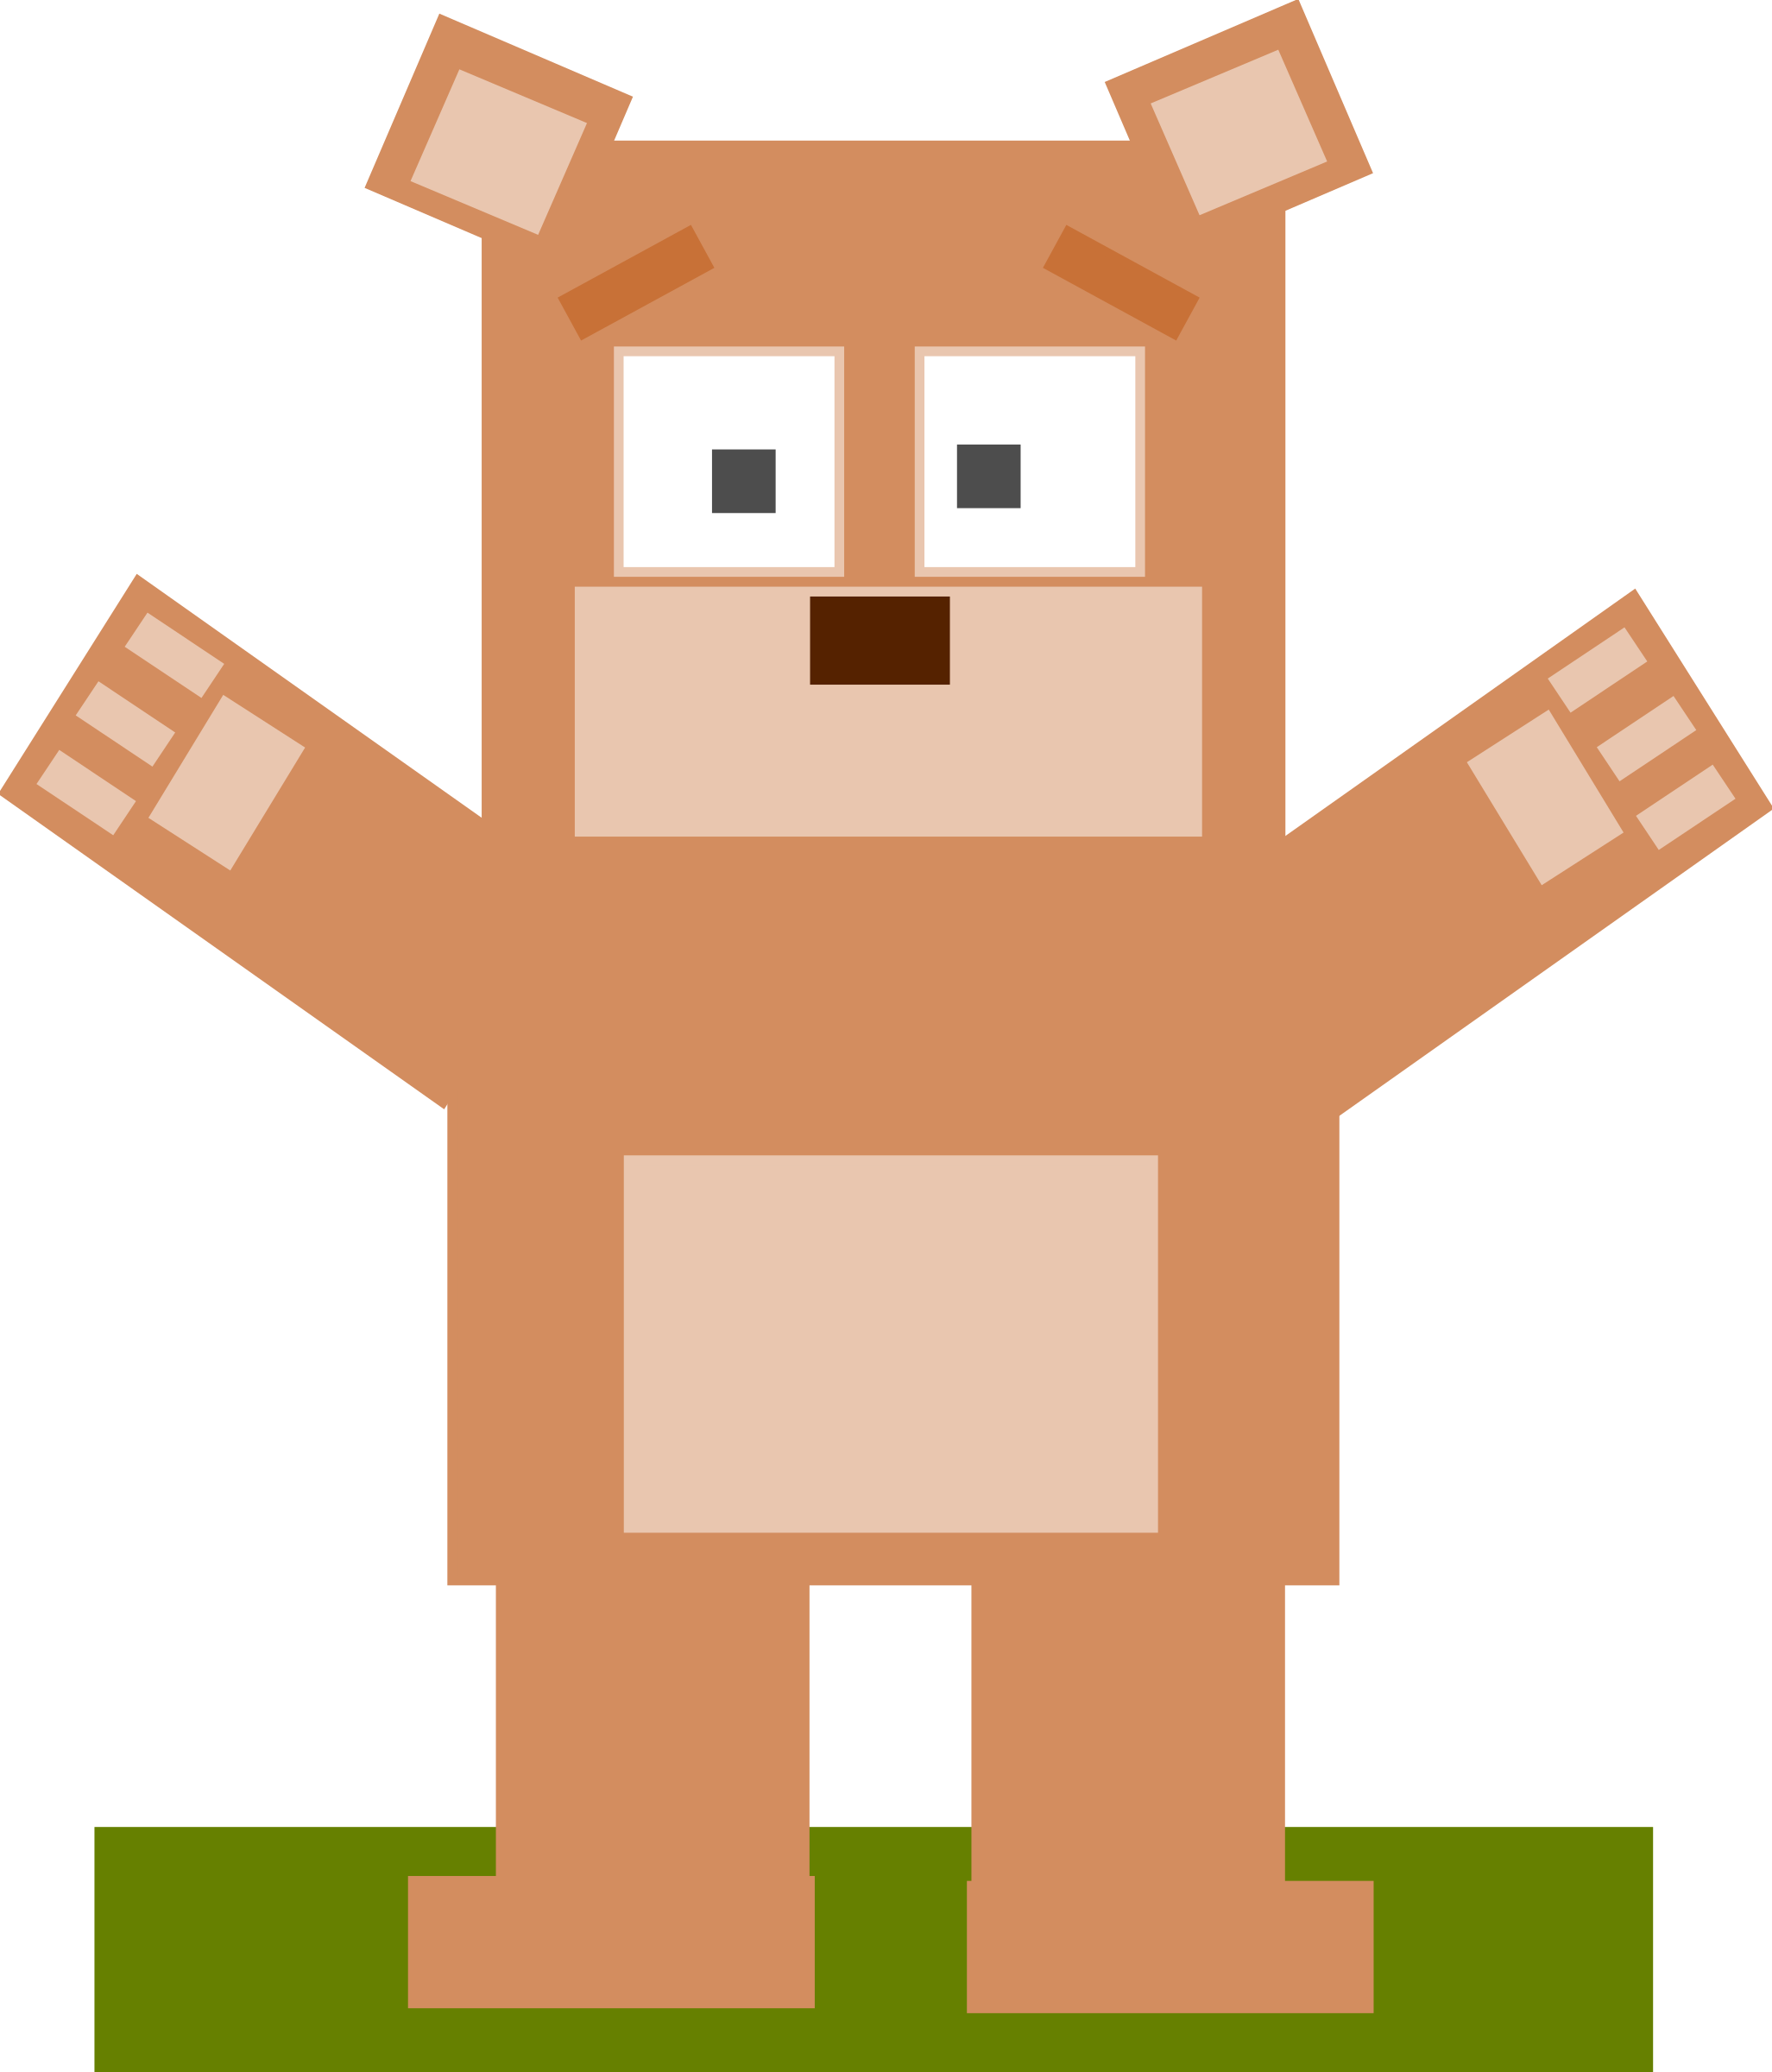 Square animal cartoon bear by Dog99x